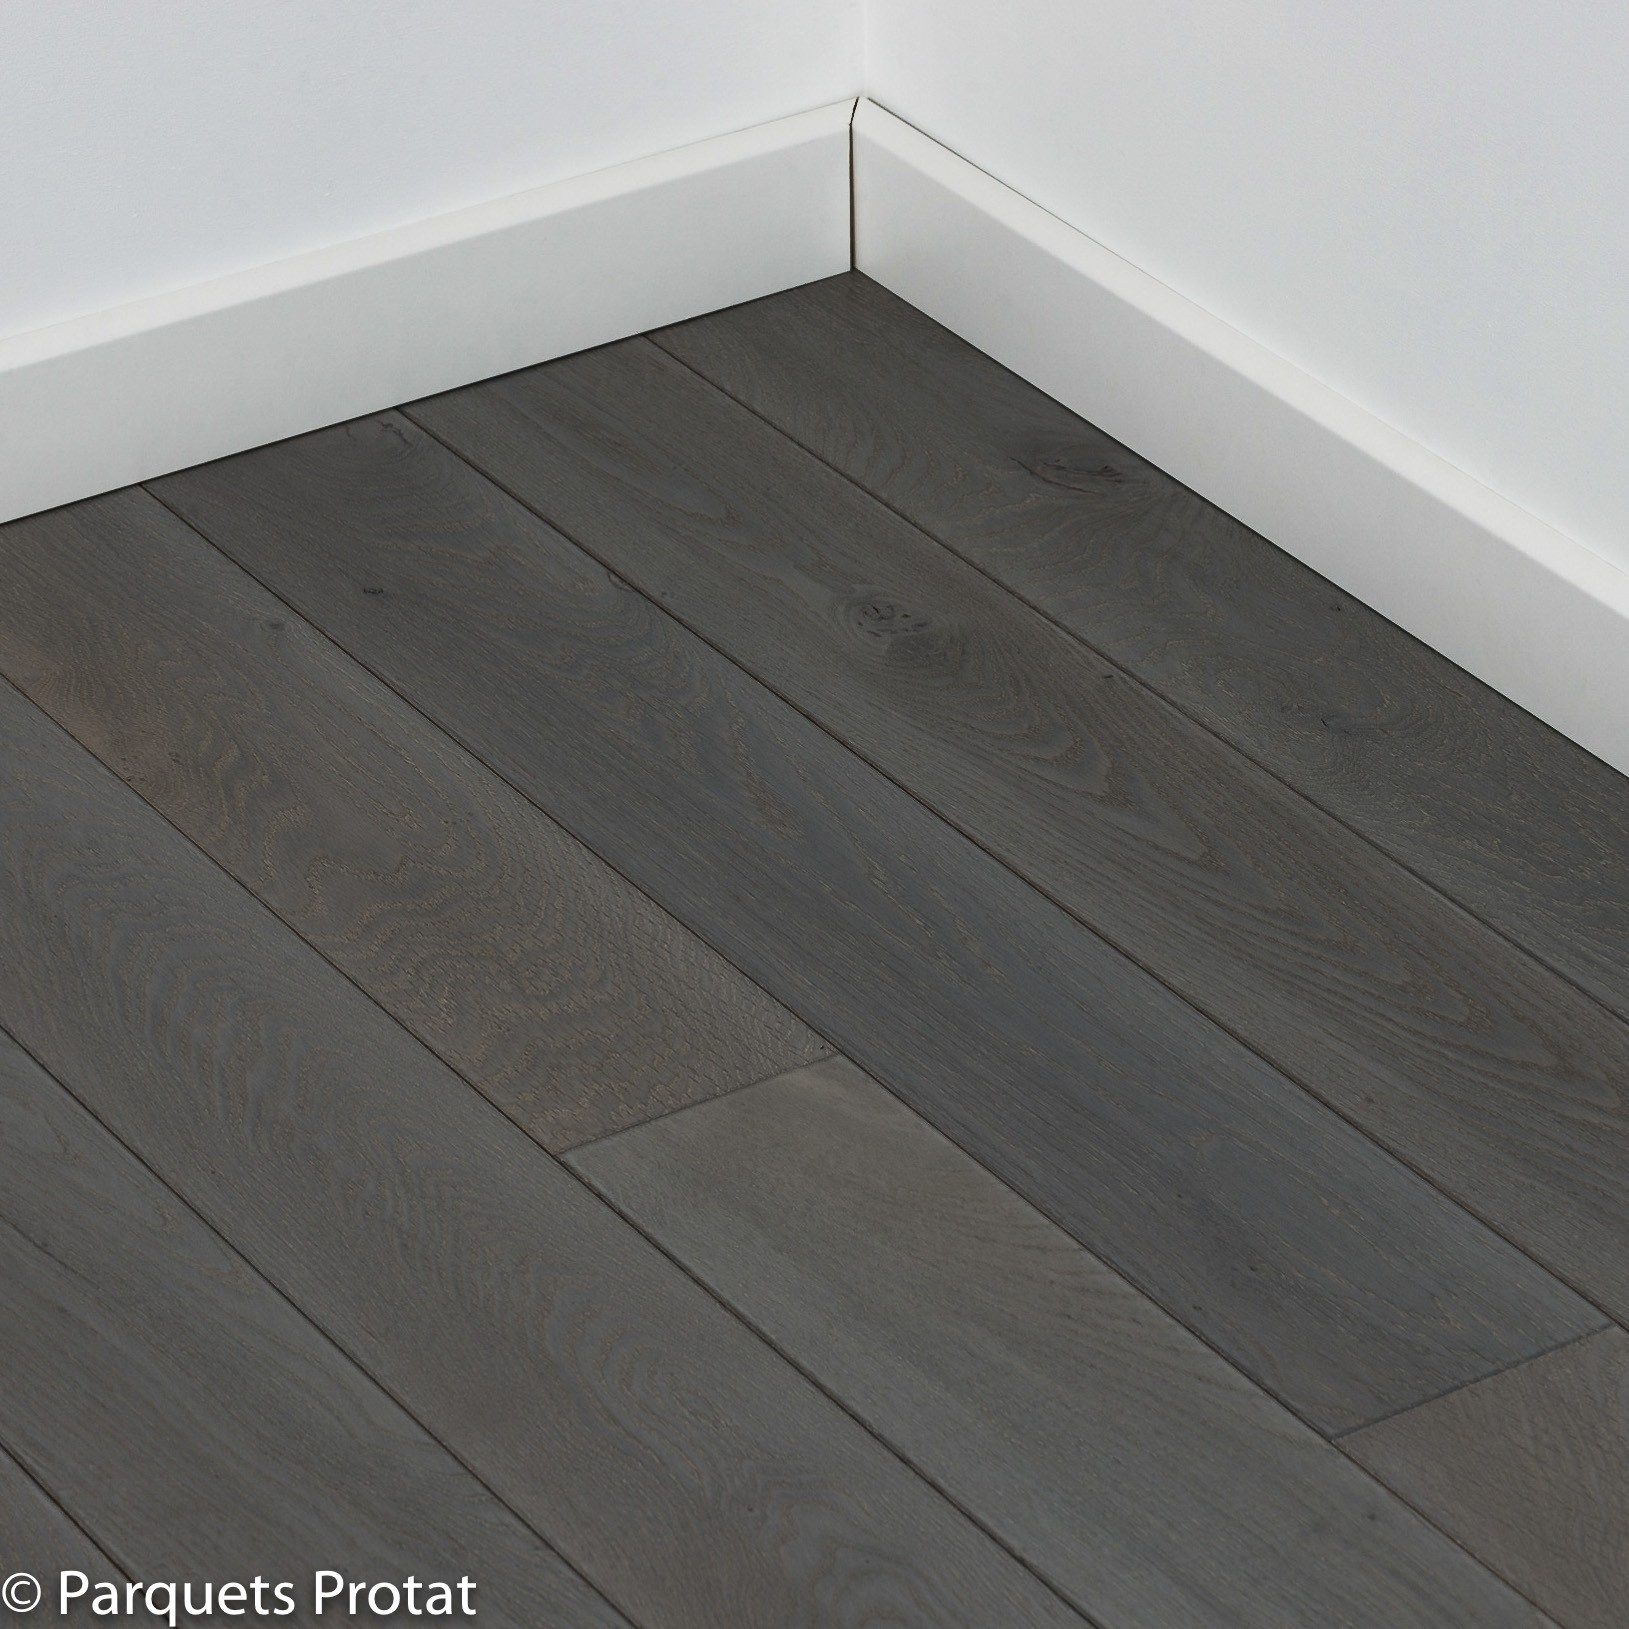 parquet stratifi gris fonc voir parquet details with parquet stratifi gris fonc finest parquet. Black Bedroom Furniture Sets. Home Design Ideas